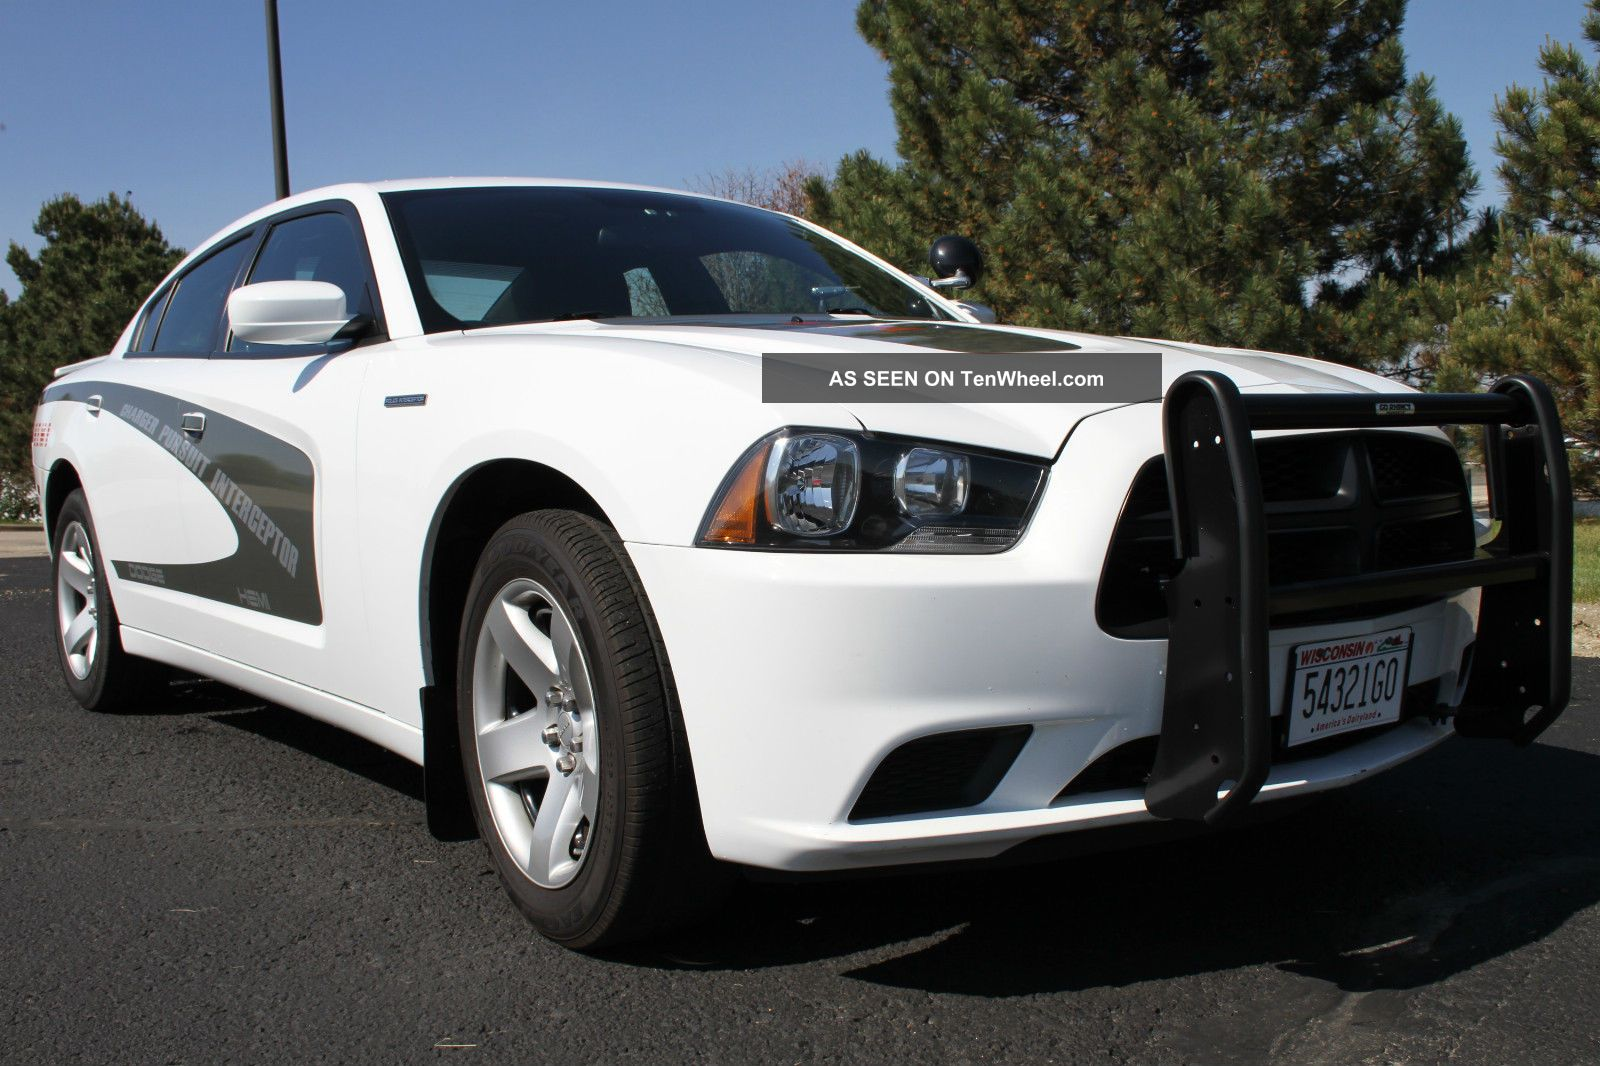 2011 dodge charger police pursuit interceptor hemi 5 7 liter. Black Bedroom Furniture Sets. Home Design Ideas